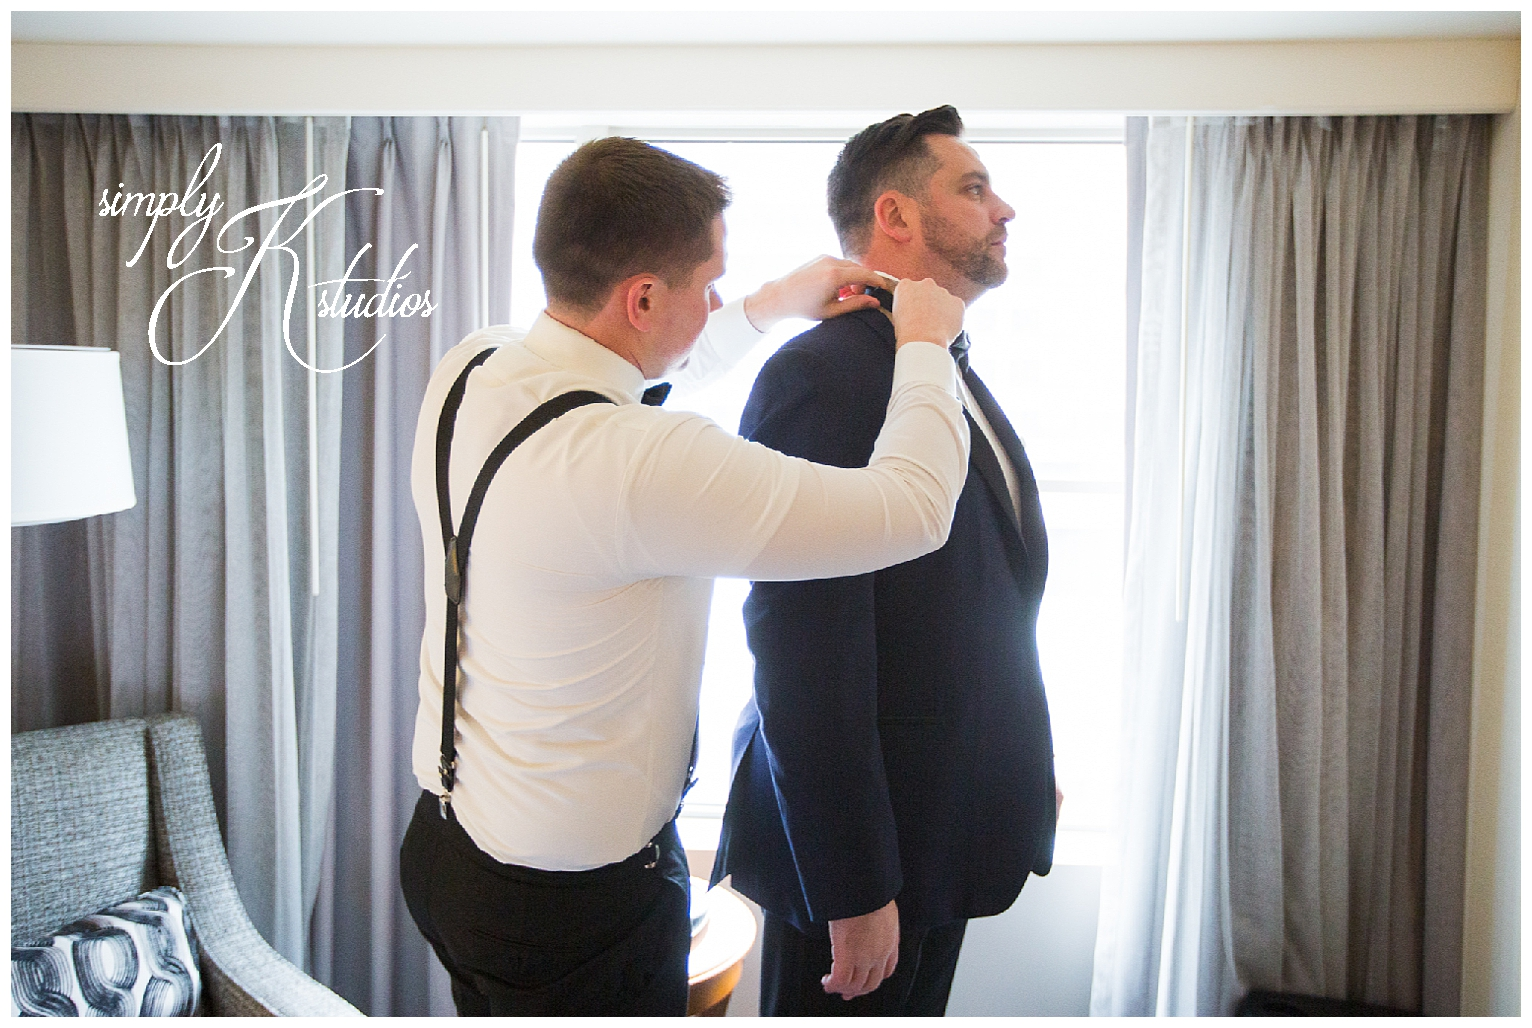 3 Groom Getting Ready.jpg